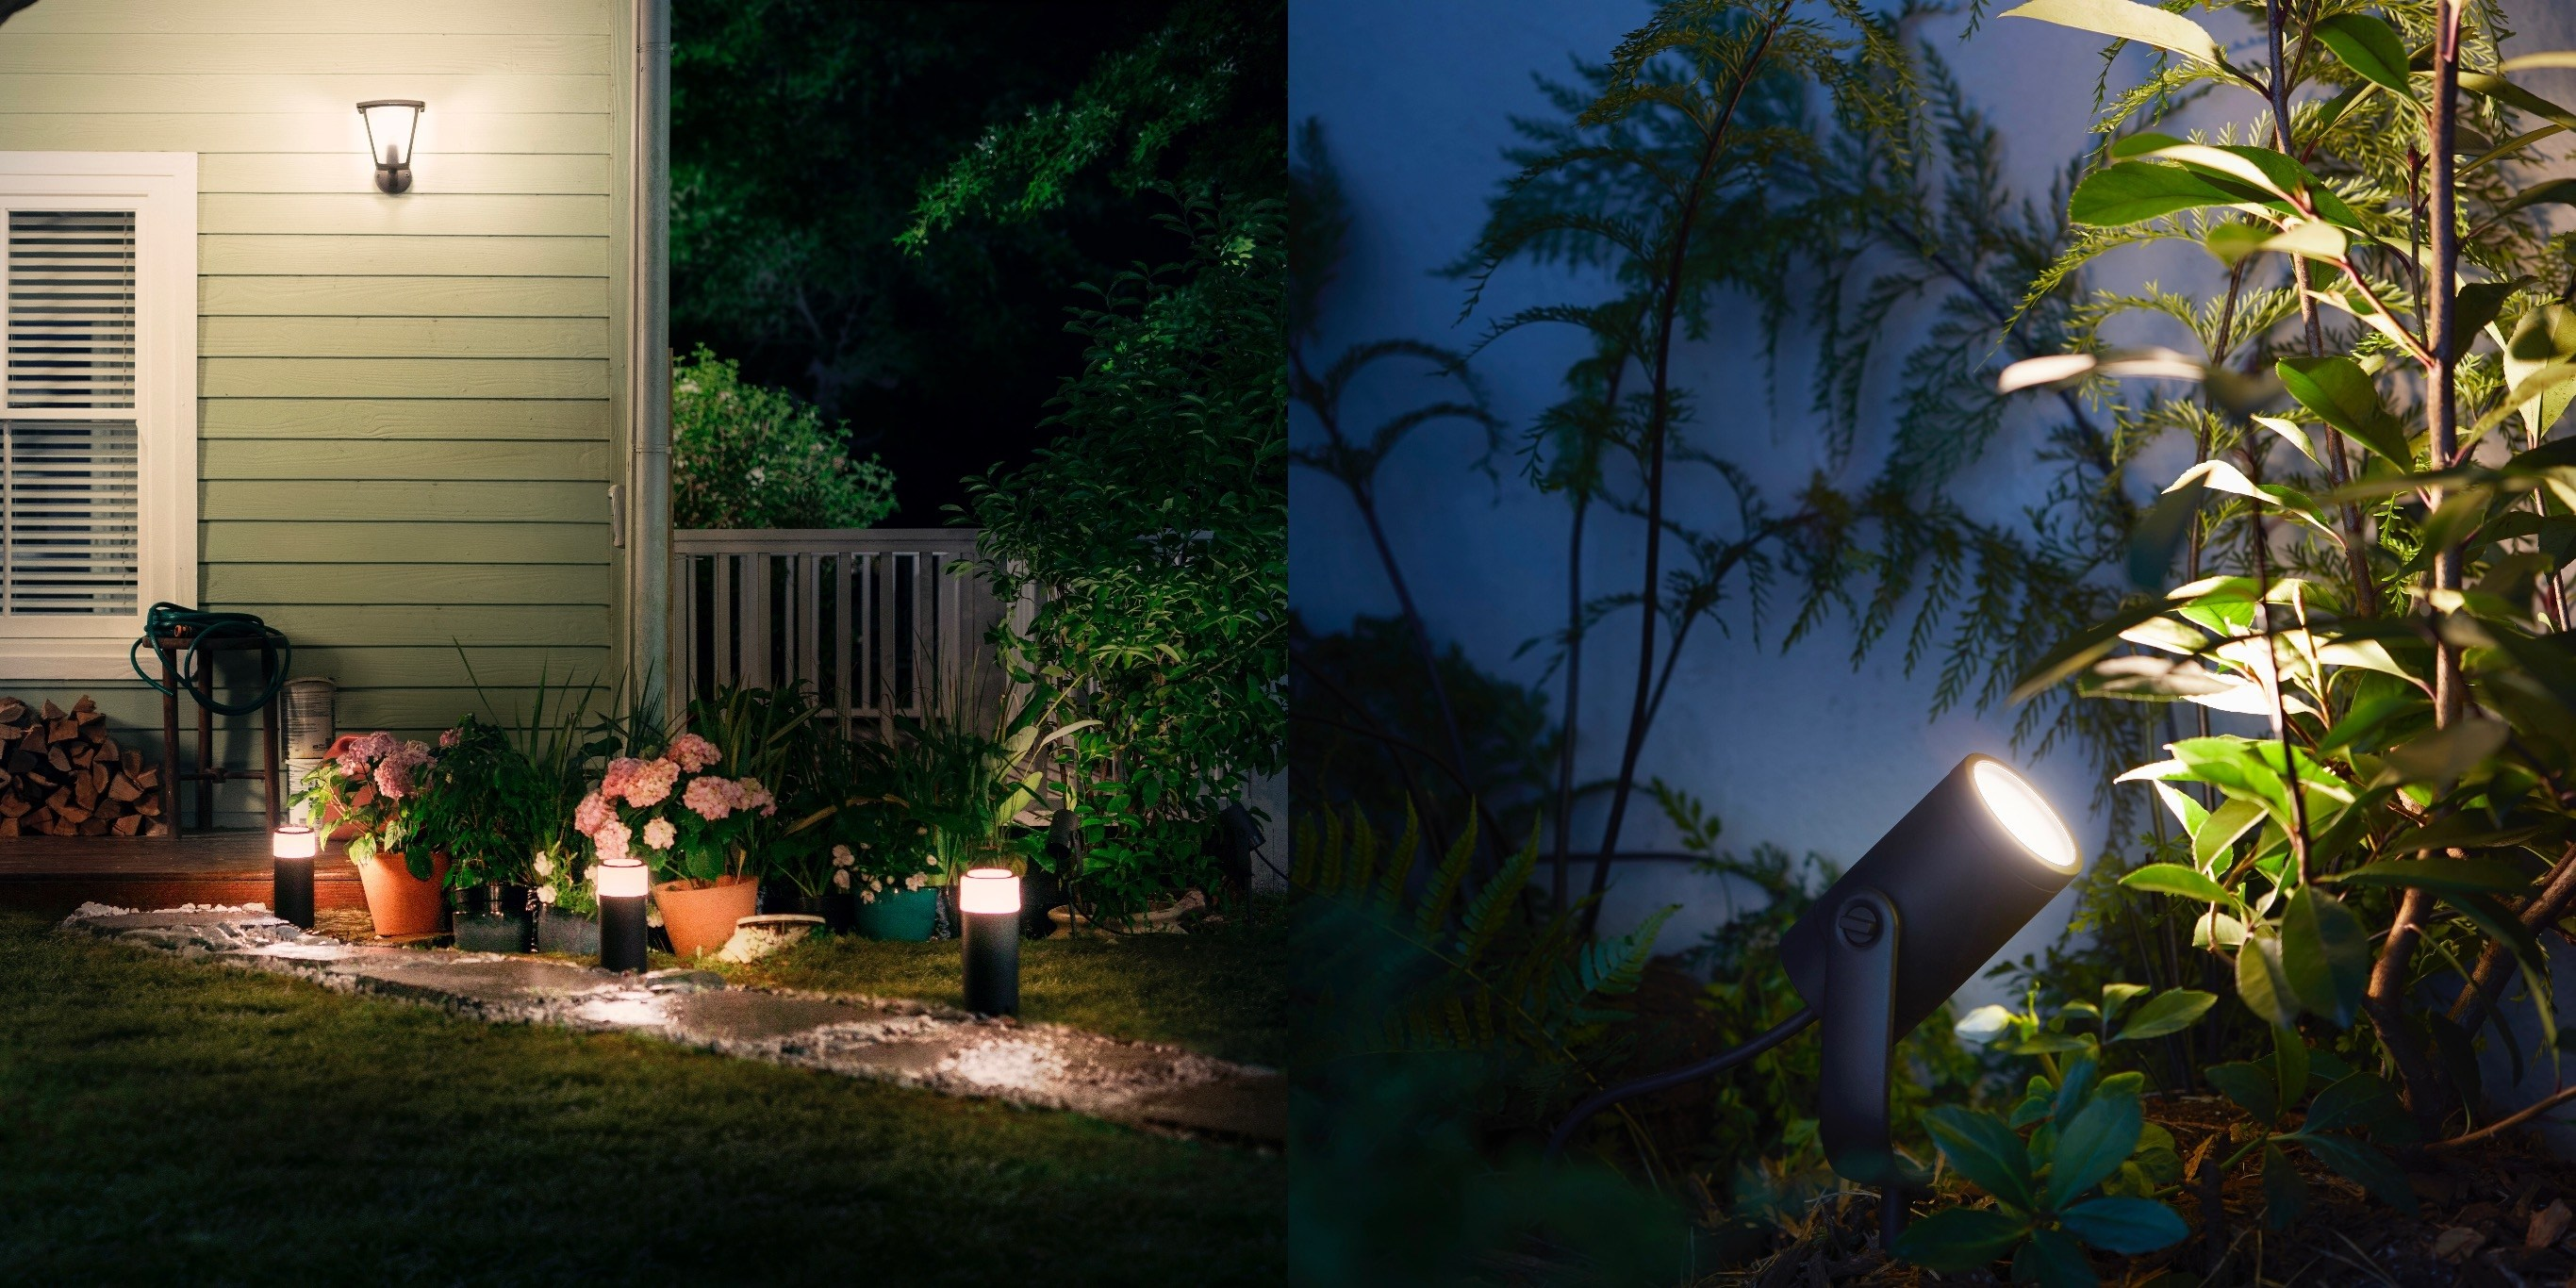 Philips Hue Outdoor Lights Arrive This Summer Macstories